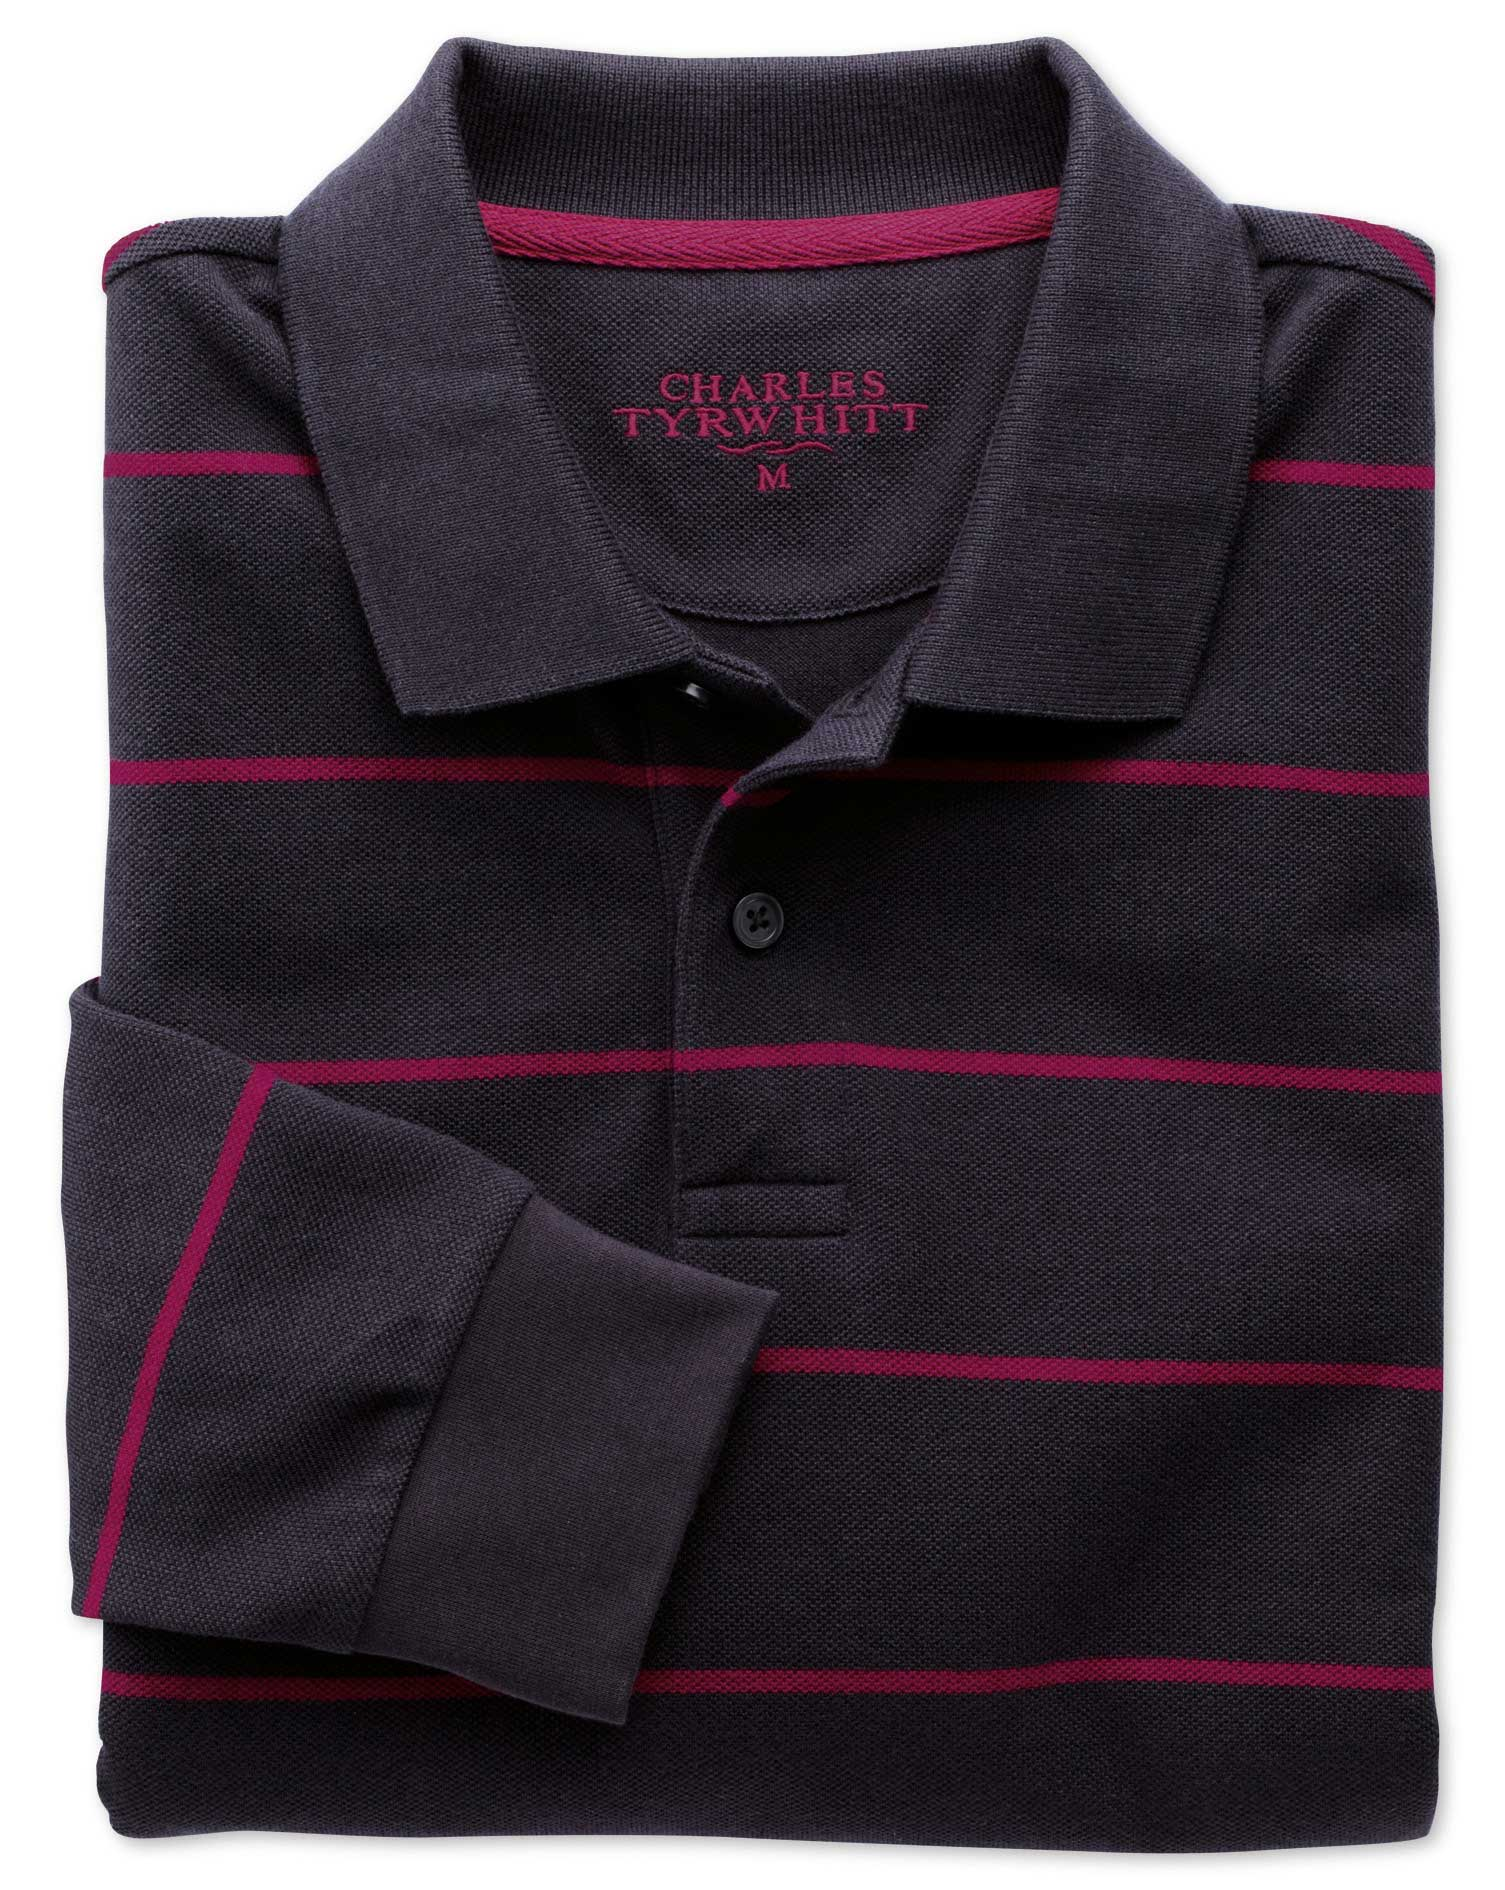 Navy and Berry Stripe Pique Long Sleeve Cotton Polo Size Large by Charles Tyrwhitt